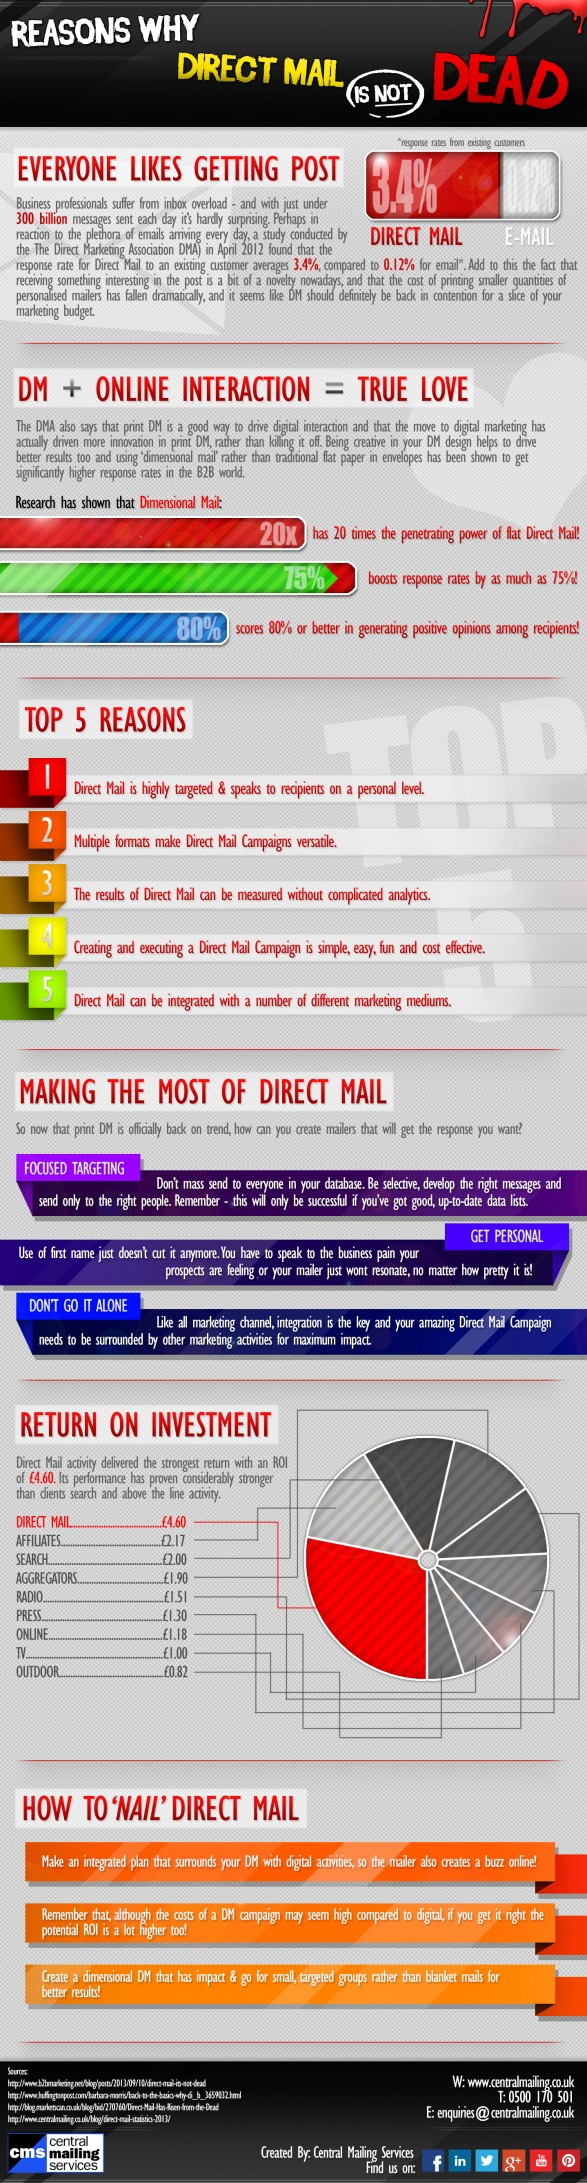 reasons-why-direct-mail-is-not-dead_526faf763fd90_w587